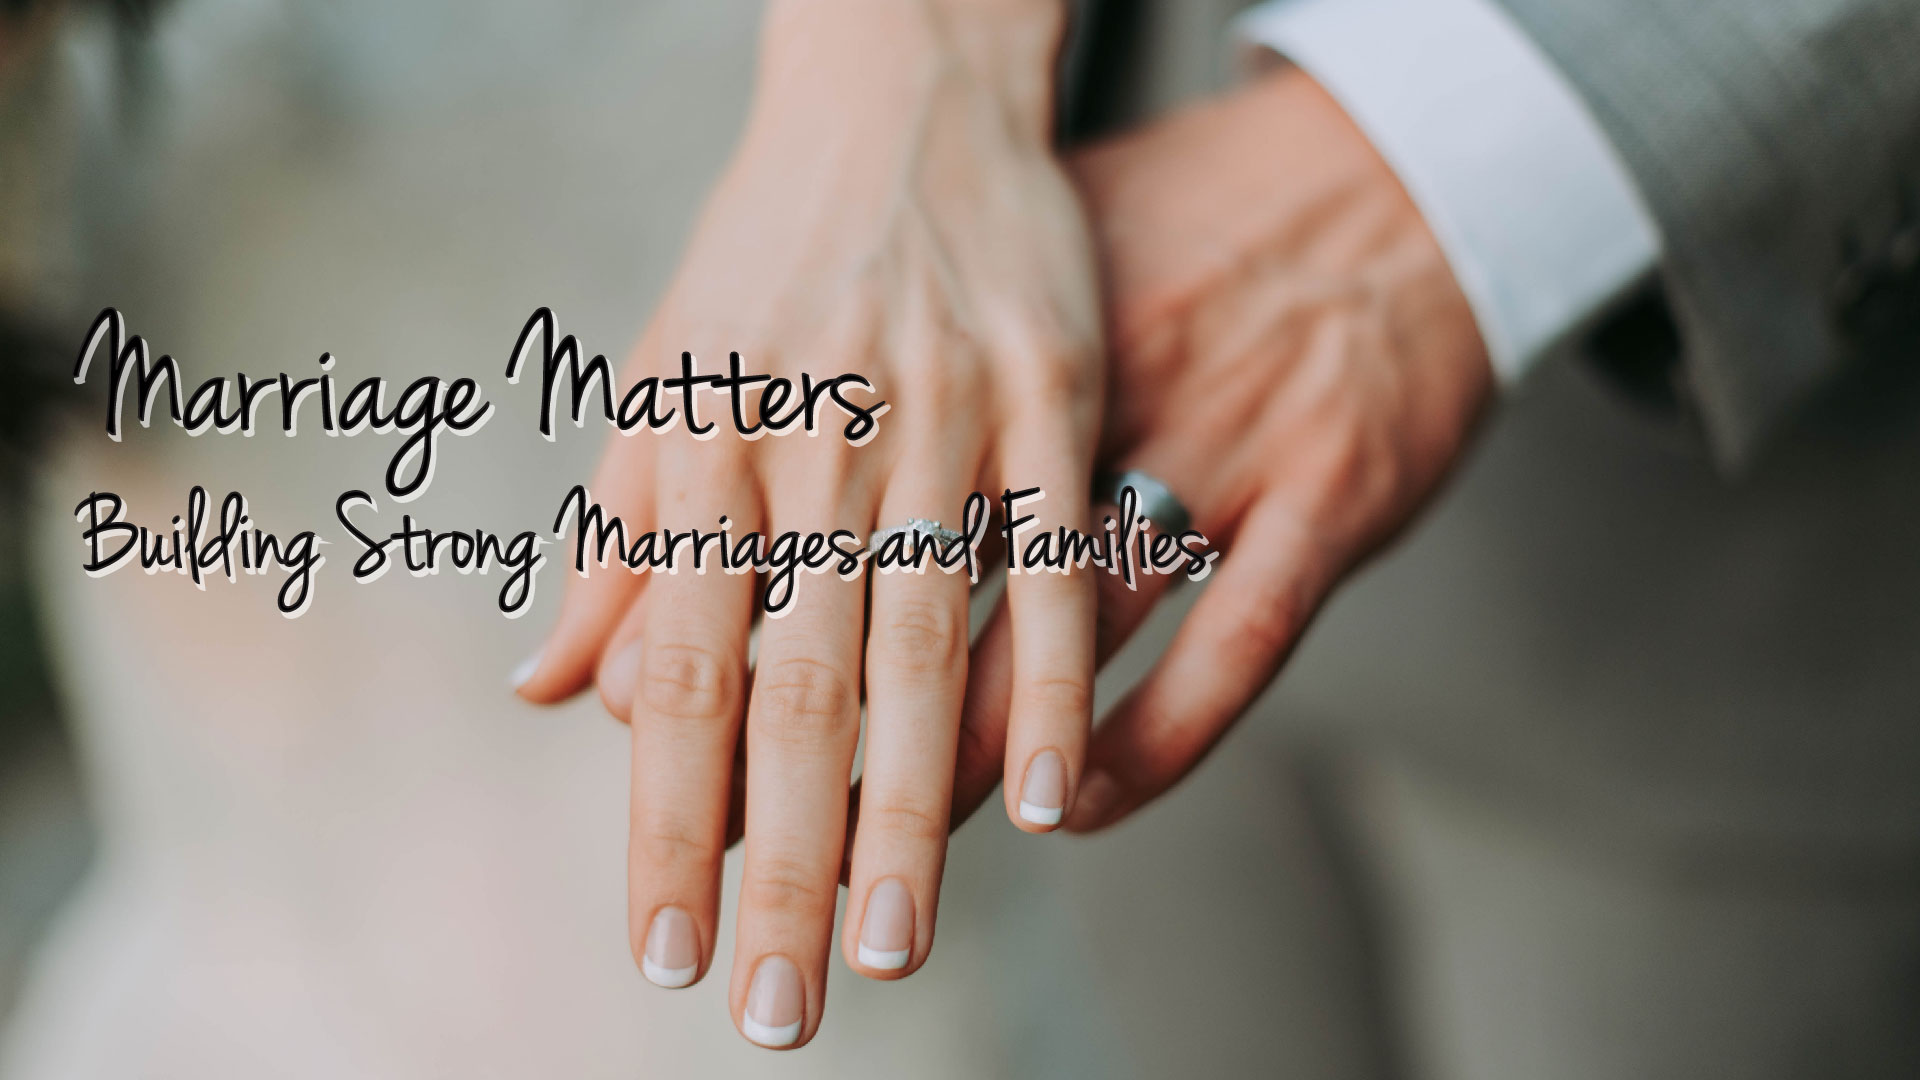 Marriage Matters – Building Strong Marriages and Families, with Rachael Carman